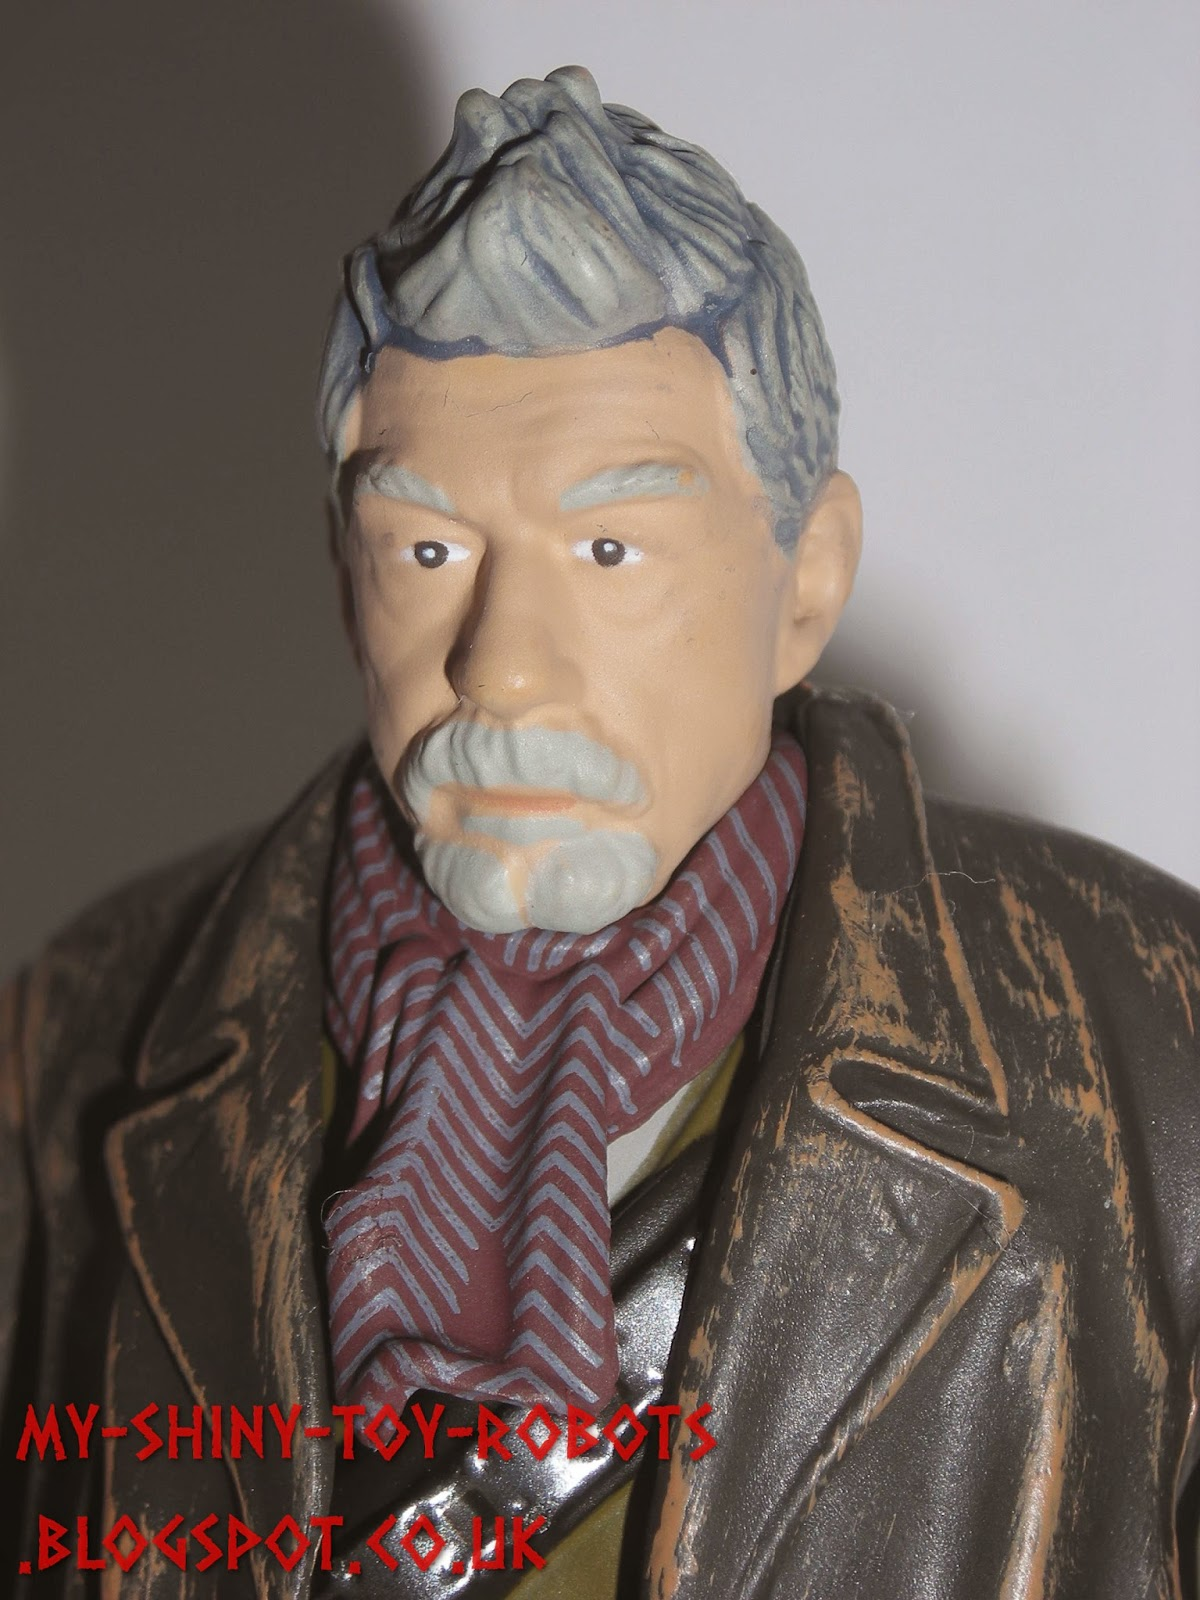 The Other/War Doctor, choose a name.